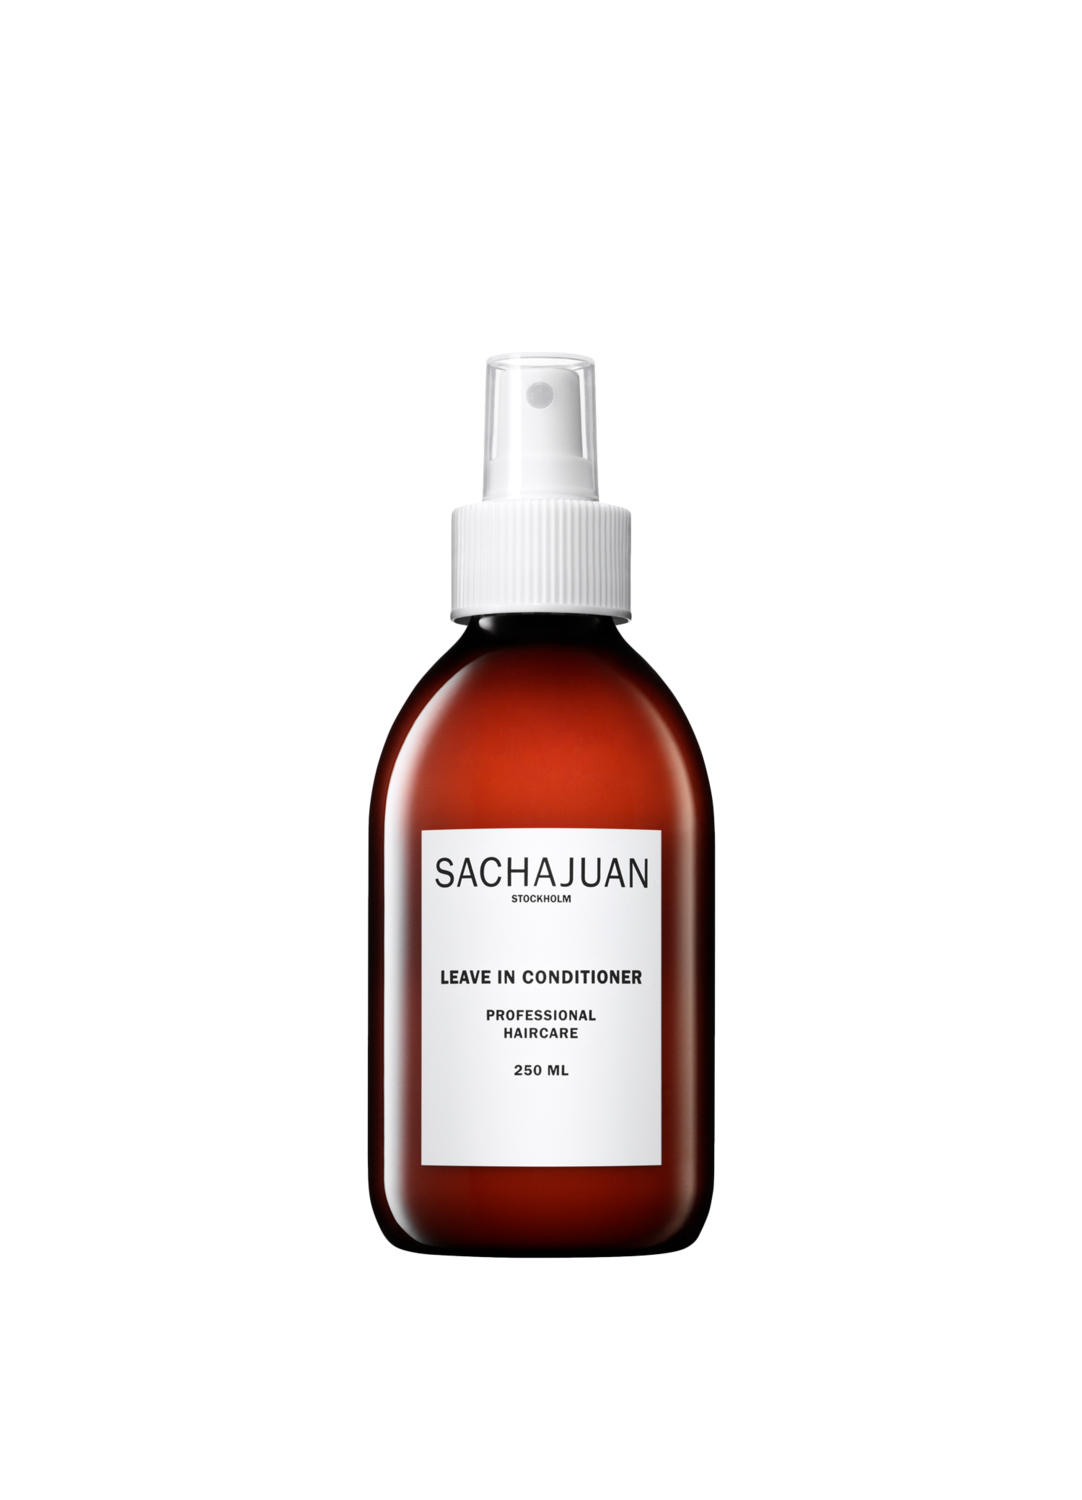 sachajuan | leave in conditioner[product_type ]sachajuan - Kiss and Makeup